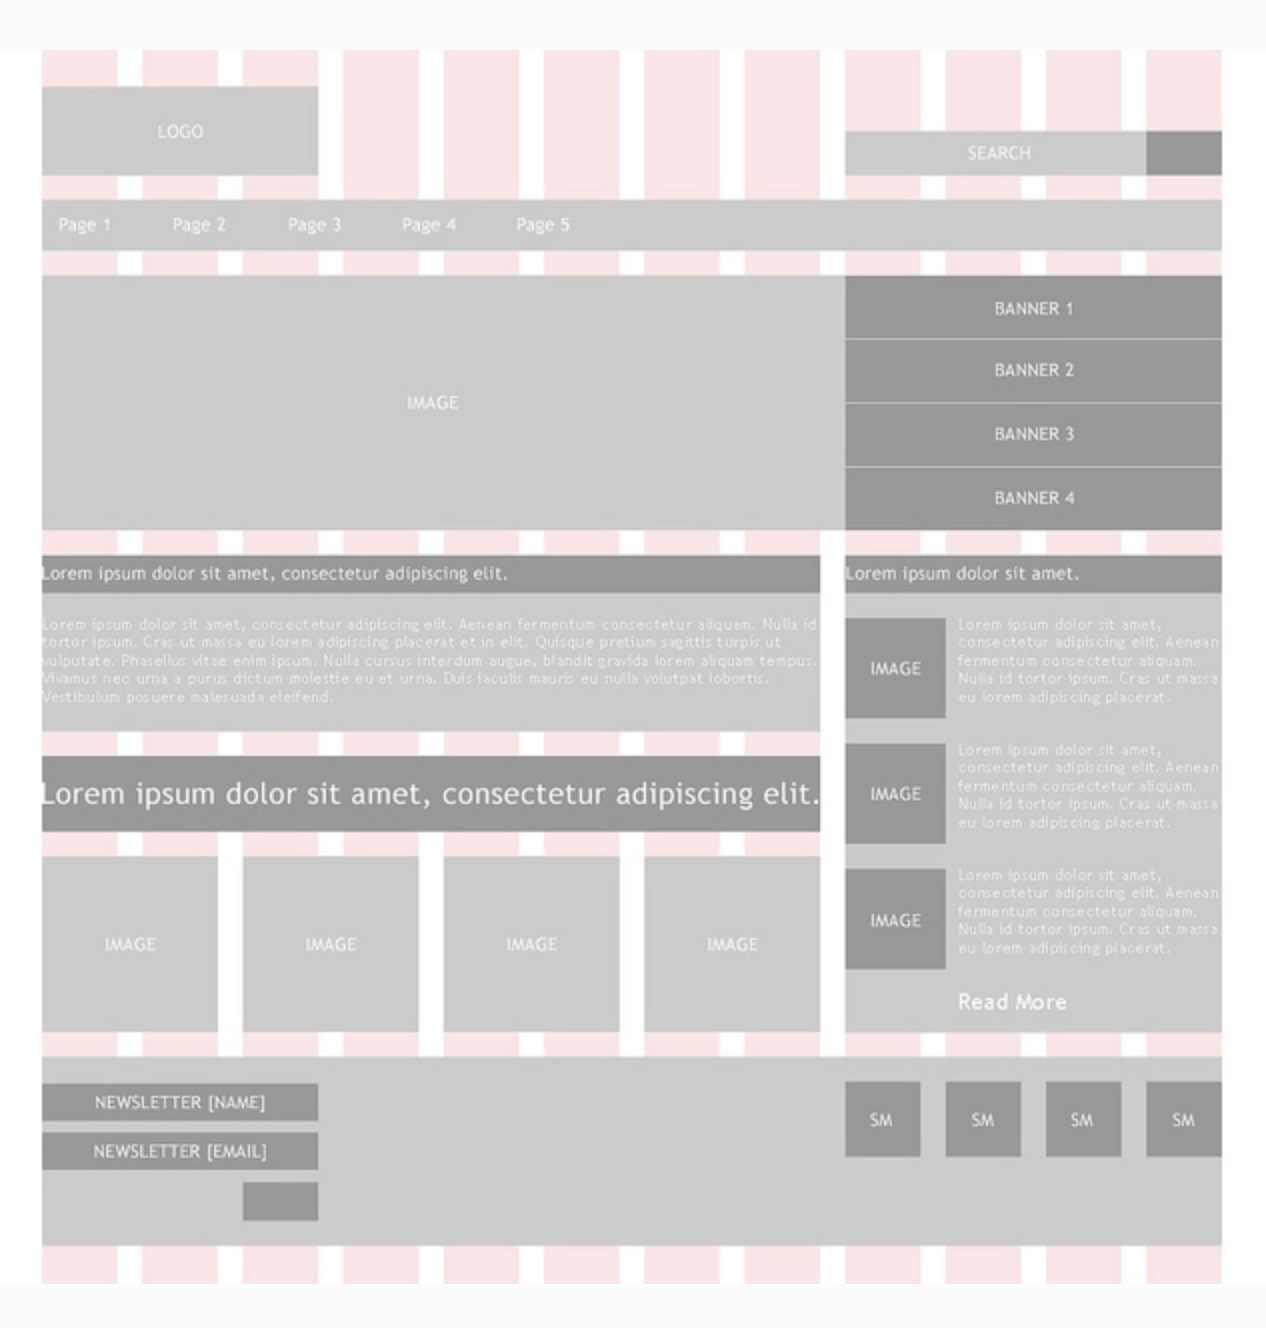 Low-fidelity wireframe example with a grid overlay